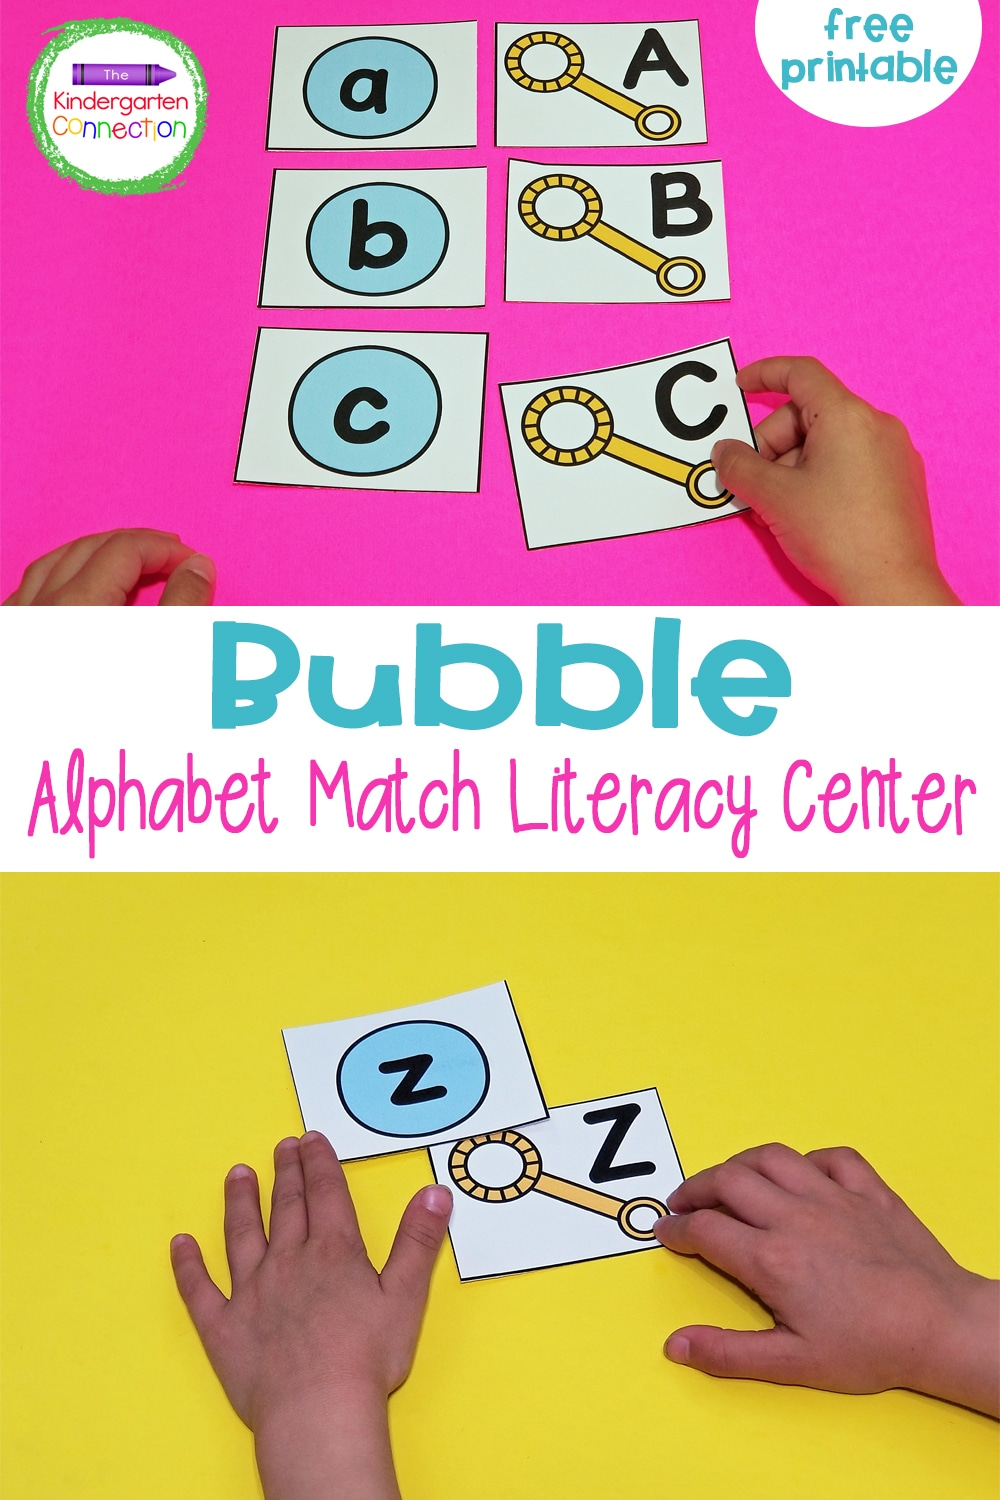 Match uppercase and lowercase letters with this free Bubble Alphabet Match! It's perfect to print and play in spring, summer, or any time!